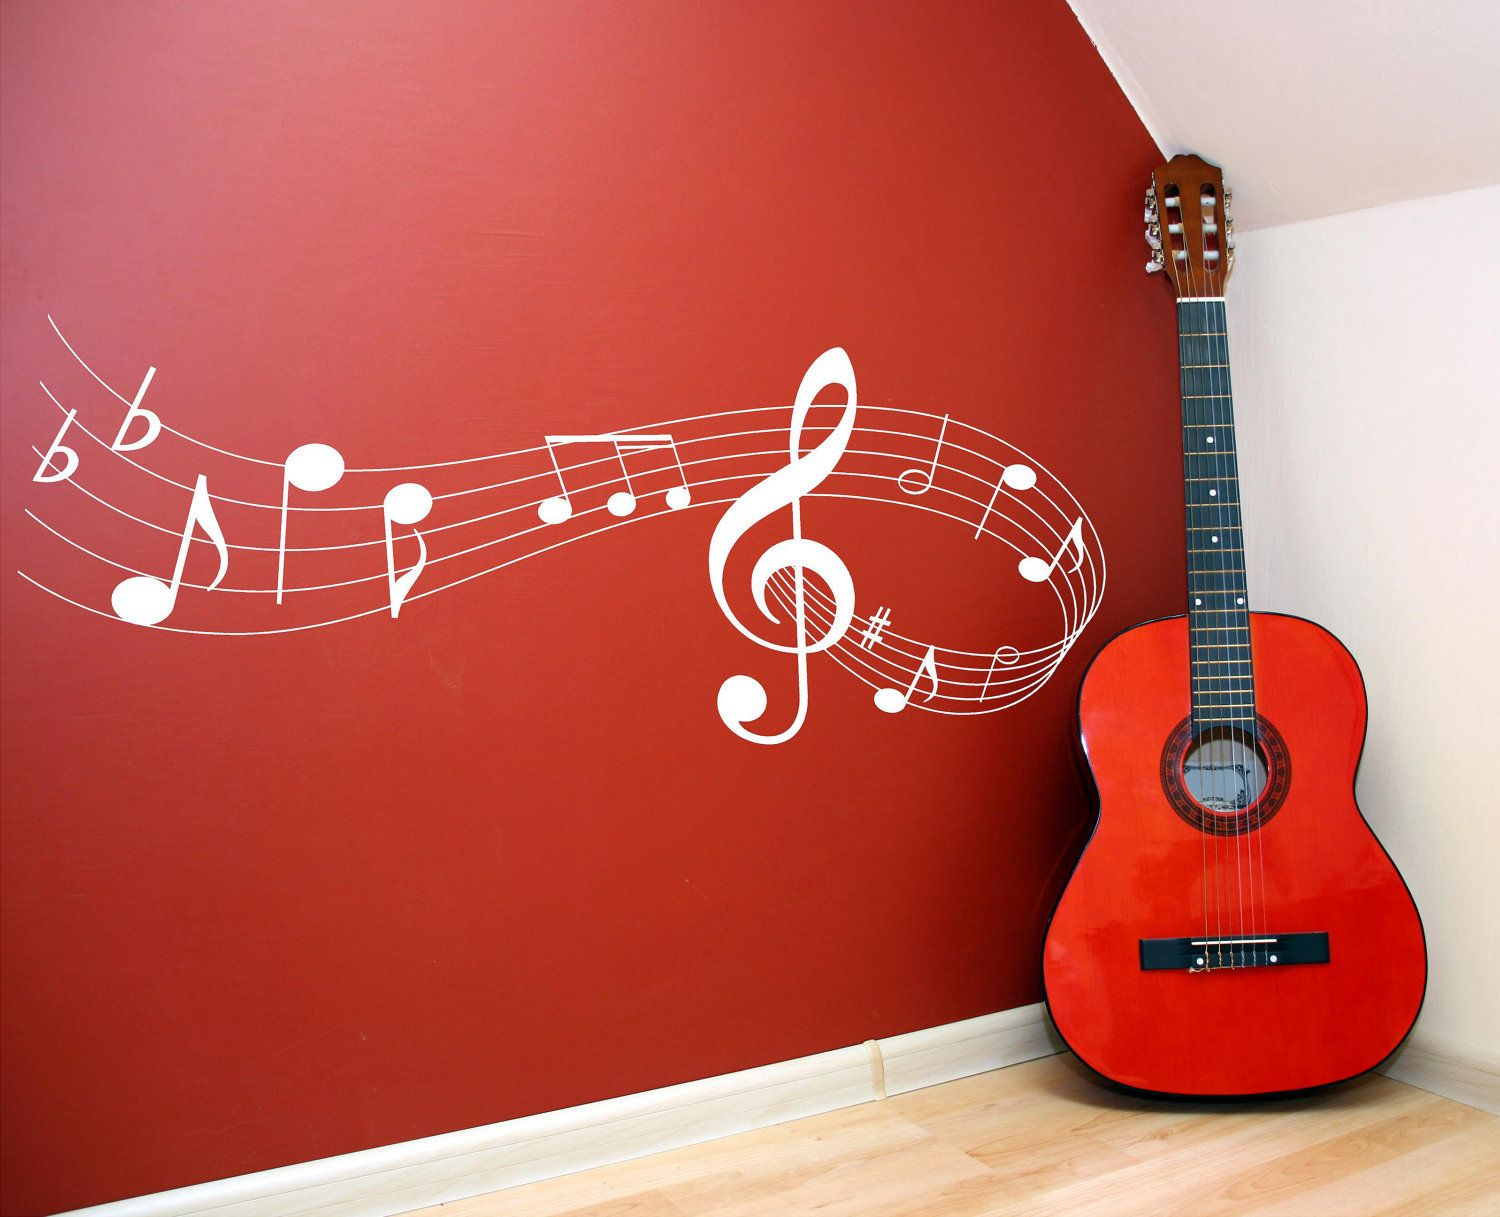 Wall graffiti vinyl lettering - Music Note Scale Vinyl Lettering Wall Words Quotes Graphics Decals Art Home Decor Itswritteninvinyl 42 00